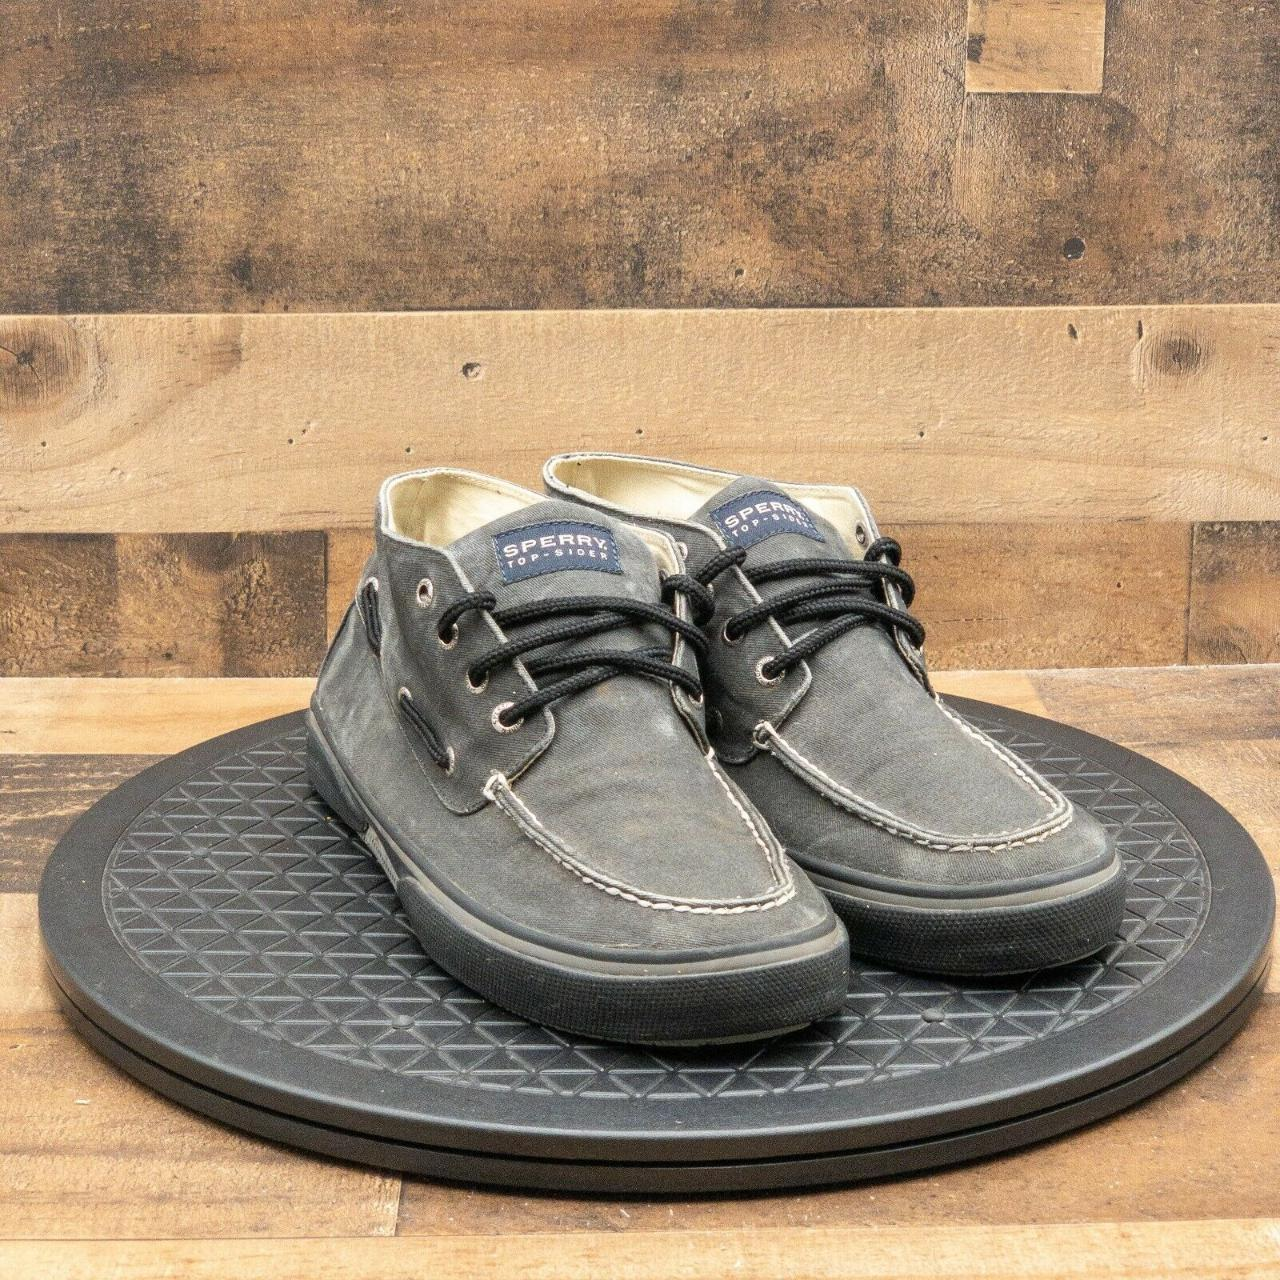 Product Image 1 - Sperry Top Sider Men's Casual